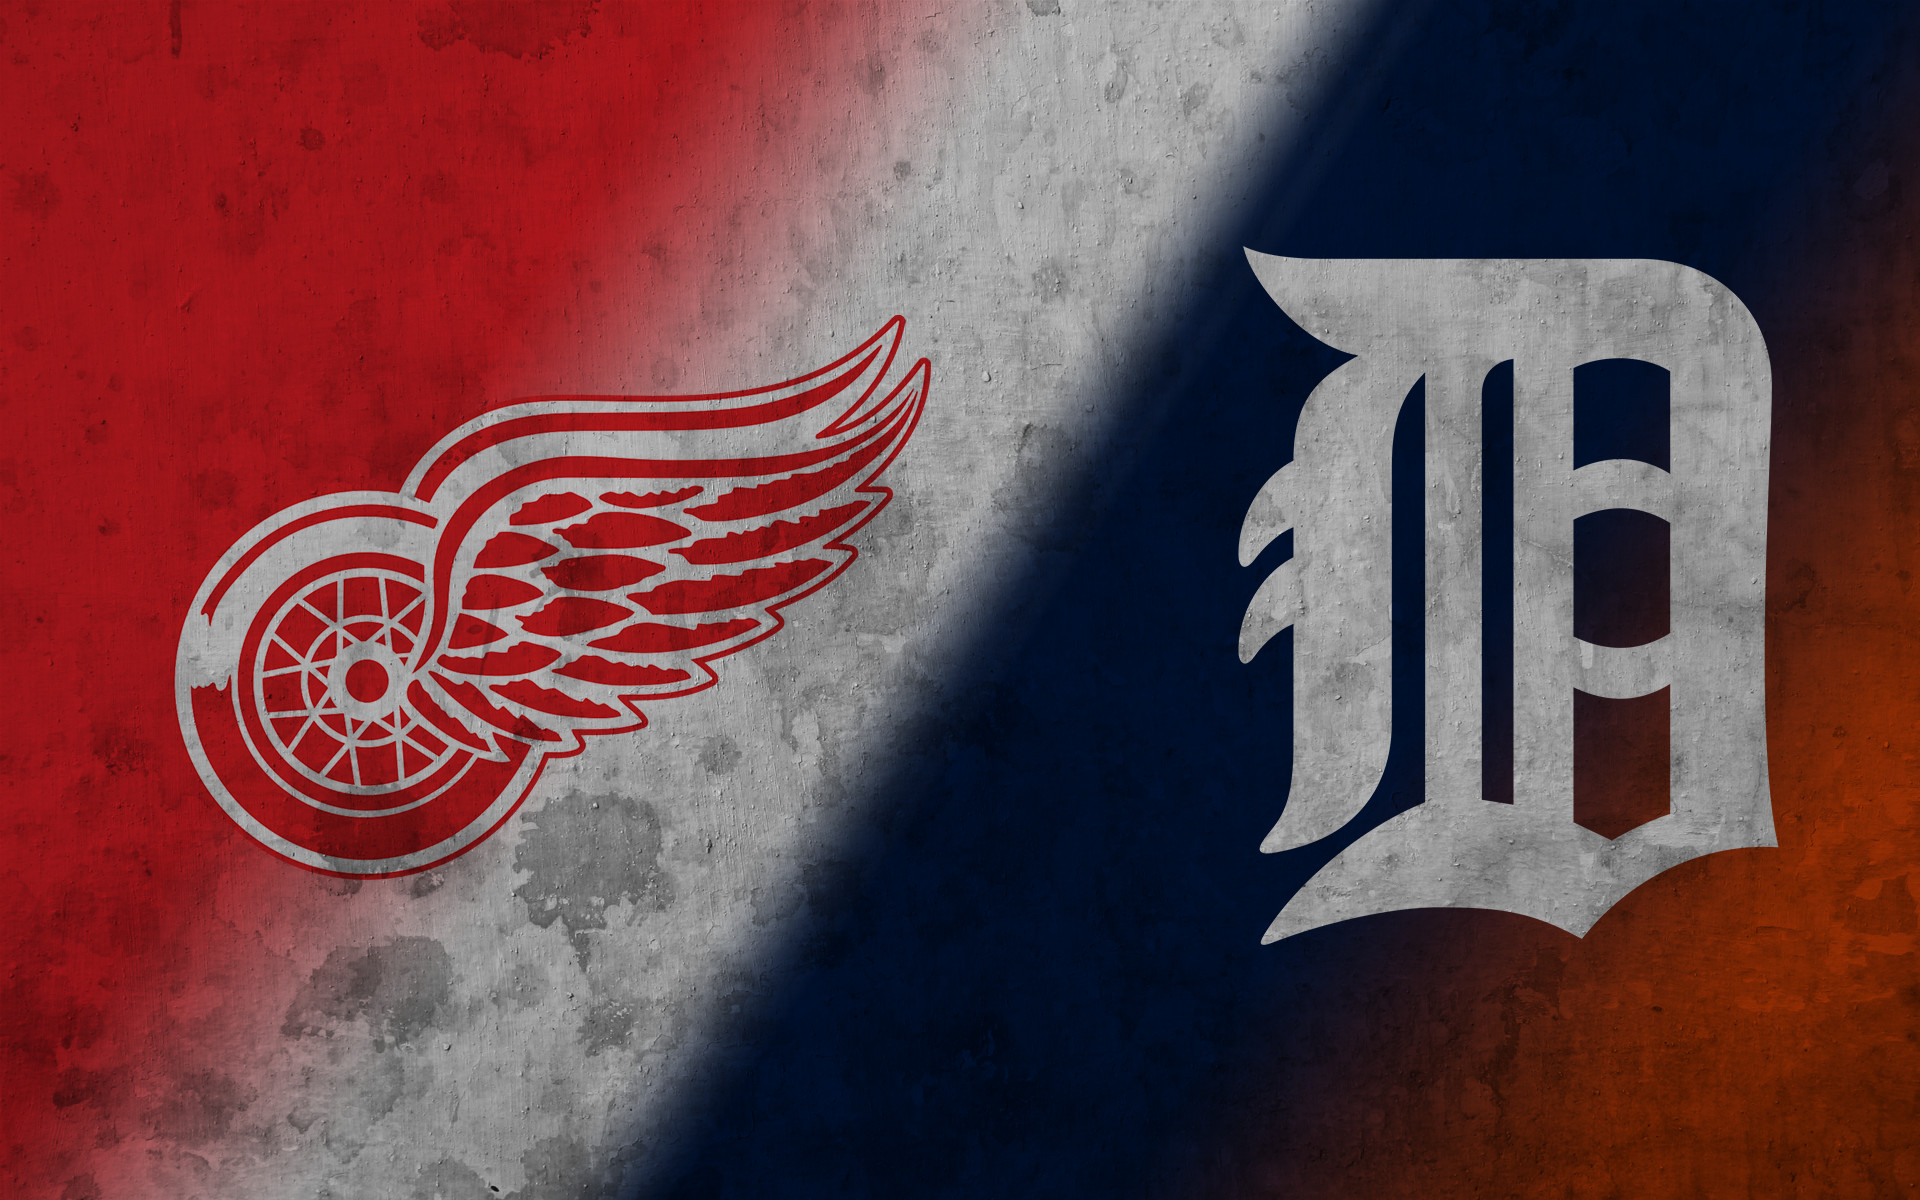 Detroit Red Wings Logo Wallpapers in High Quality | px, by Angele  Malpass